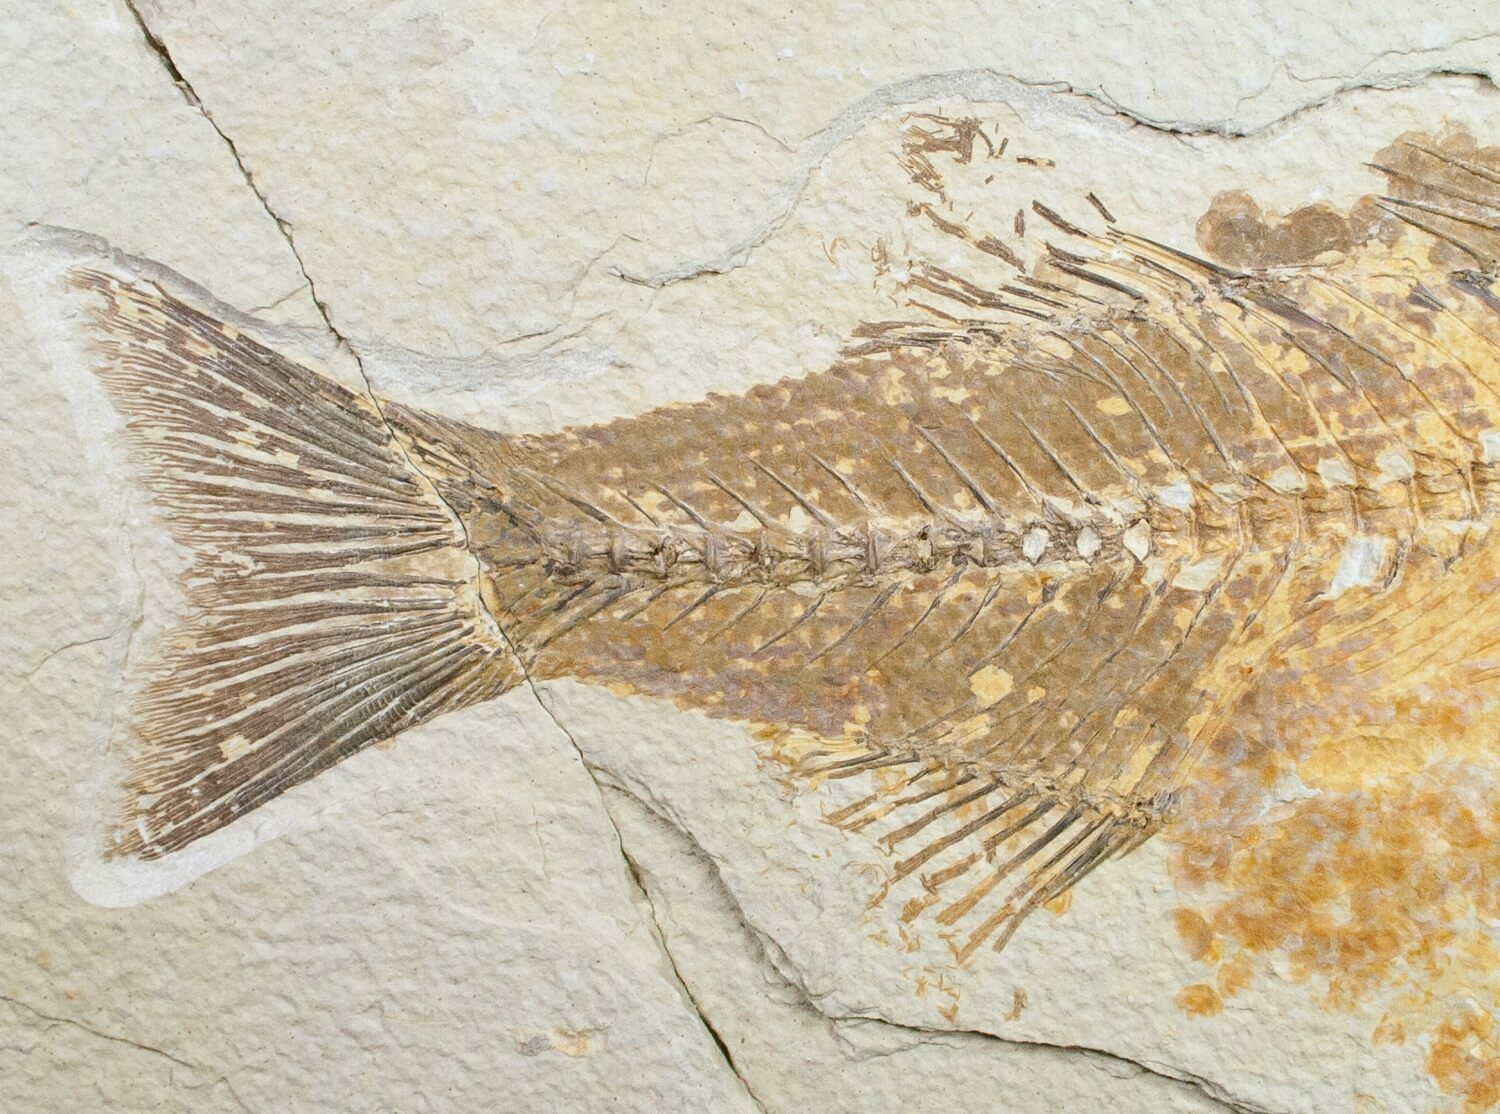 Bargain 10 mioplosus fossil fish wyoming for sale for Fish fossils for sale